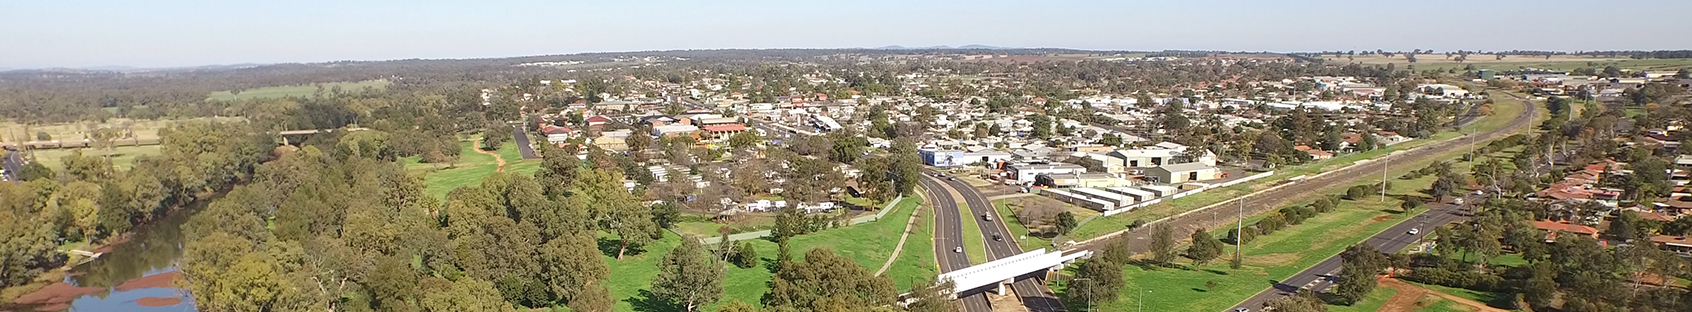 dubbo - photo #32